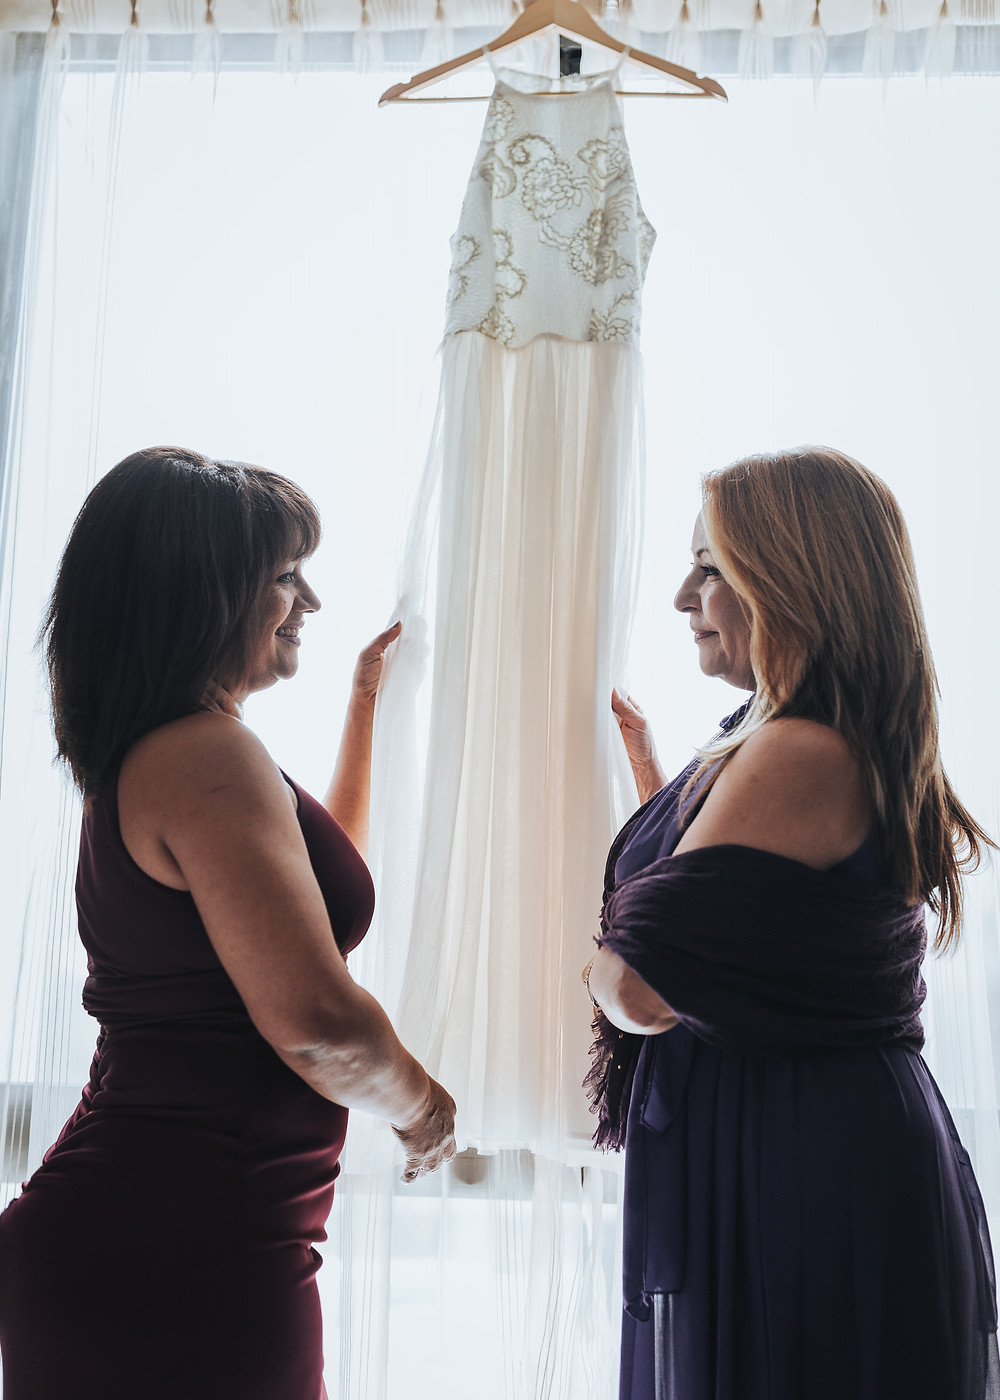 Mother looking at wedding dress